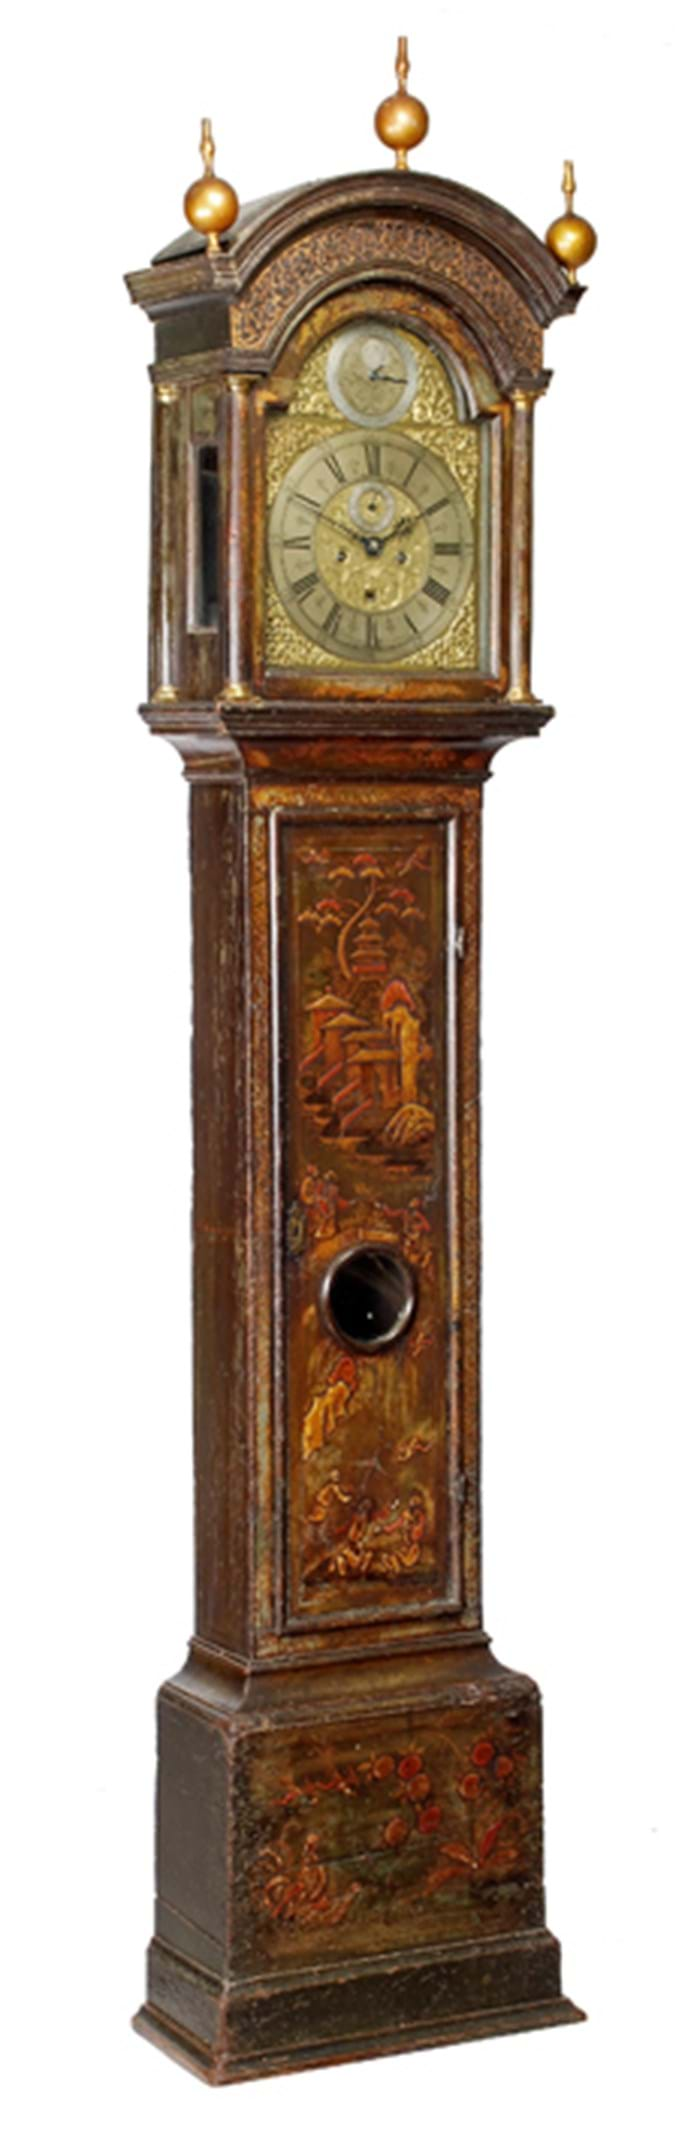 18th century longcase clock in green japanned case